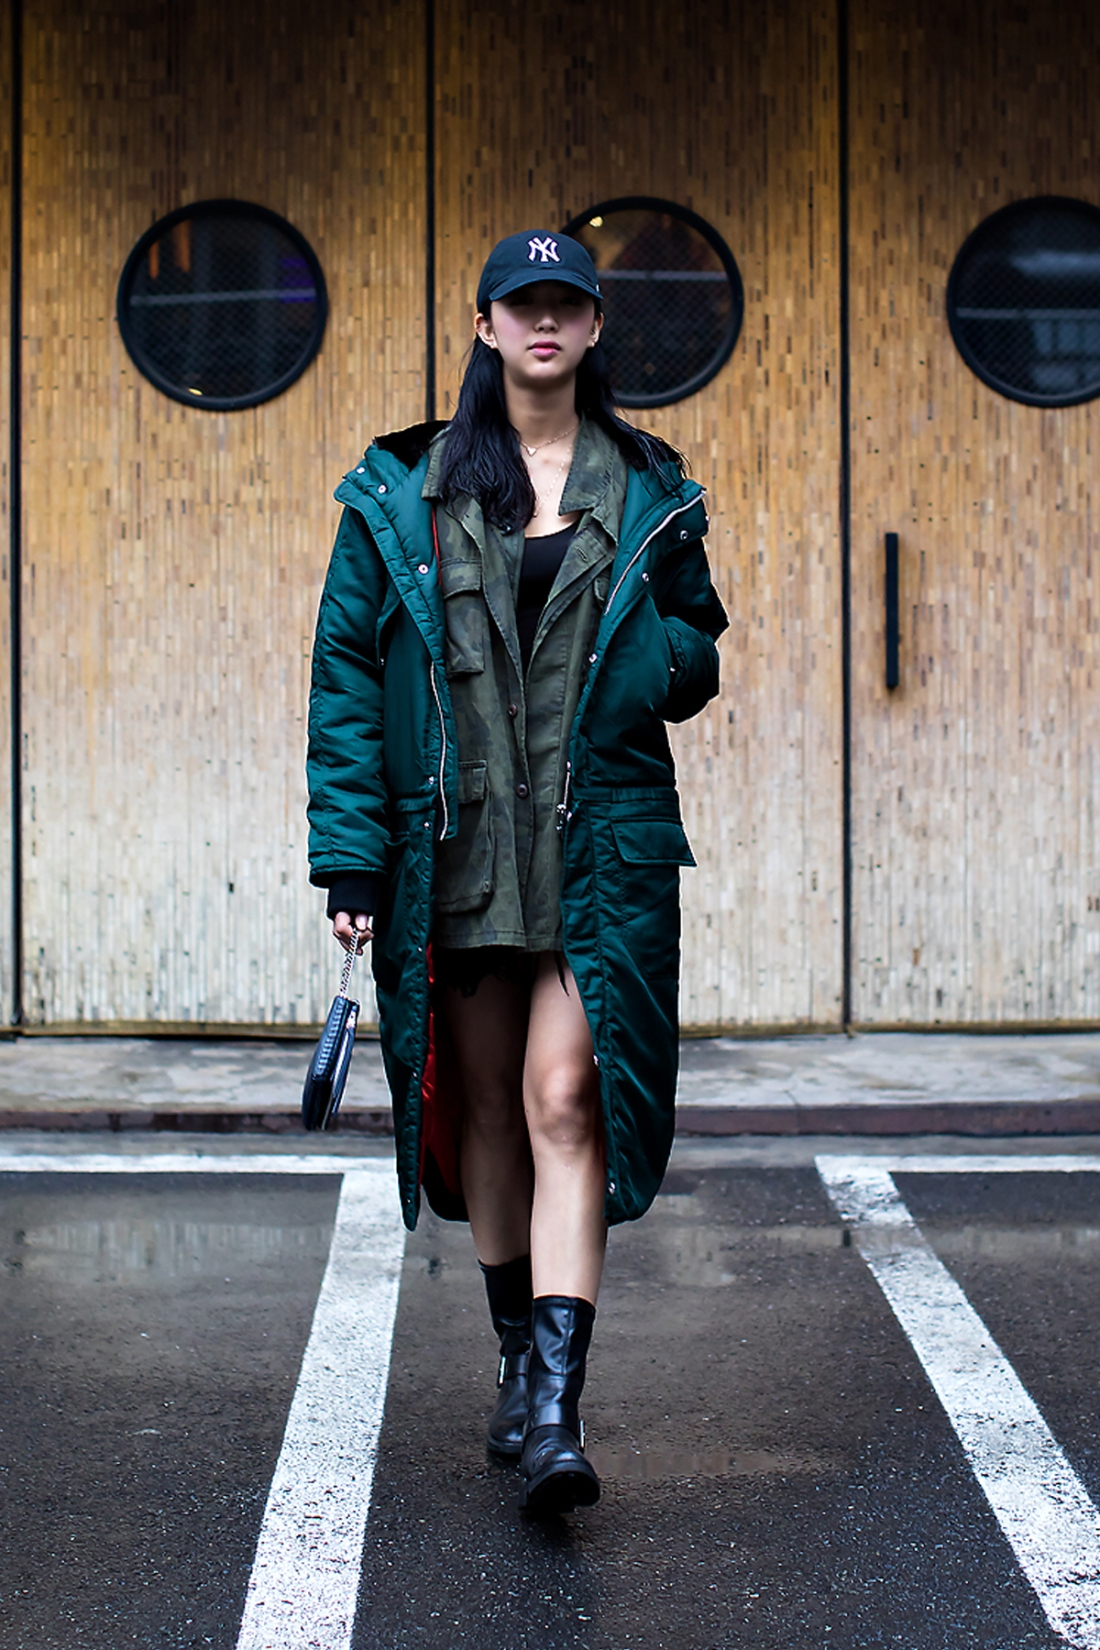 Lee Myul, Street Fashion 2017 in SEOUL.jpg